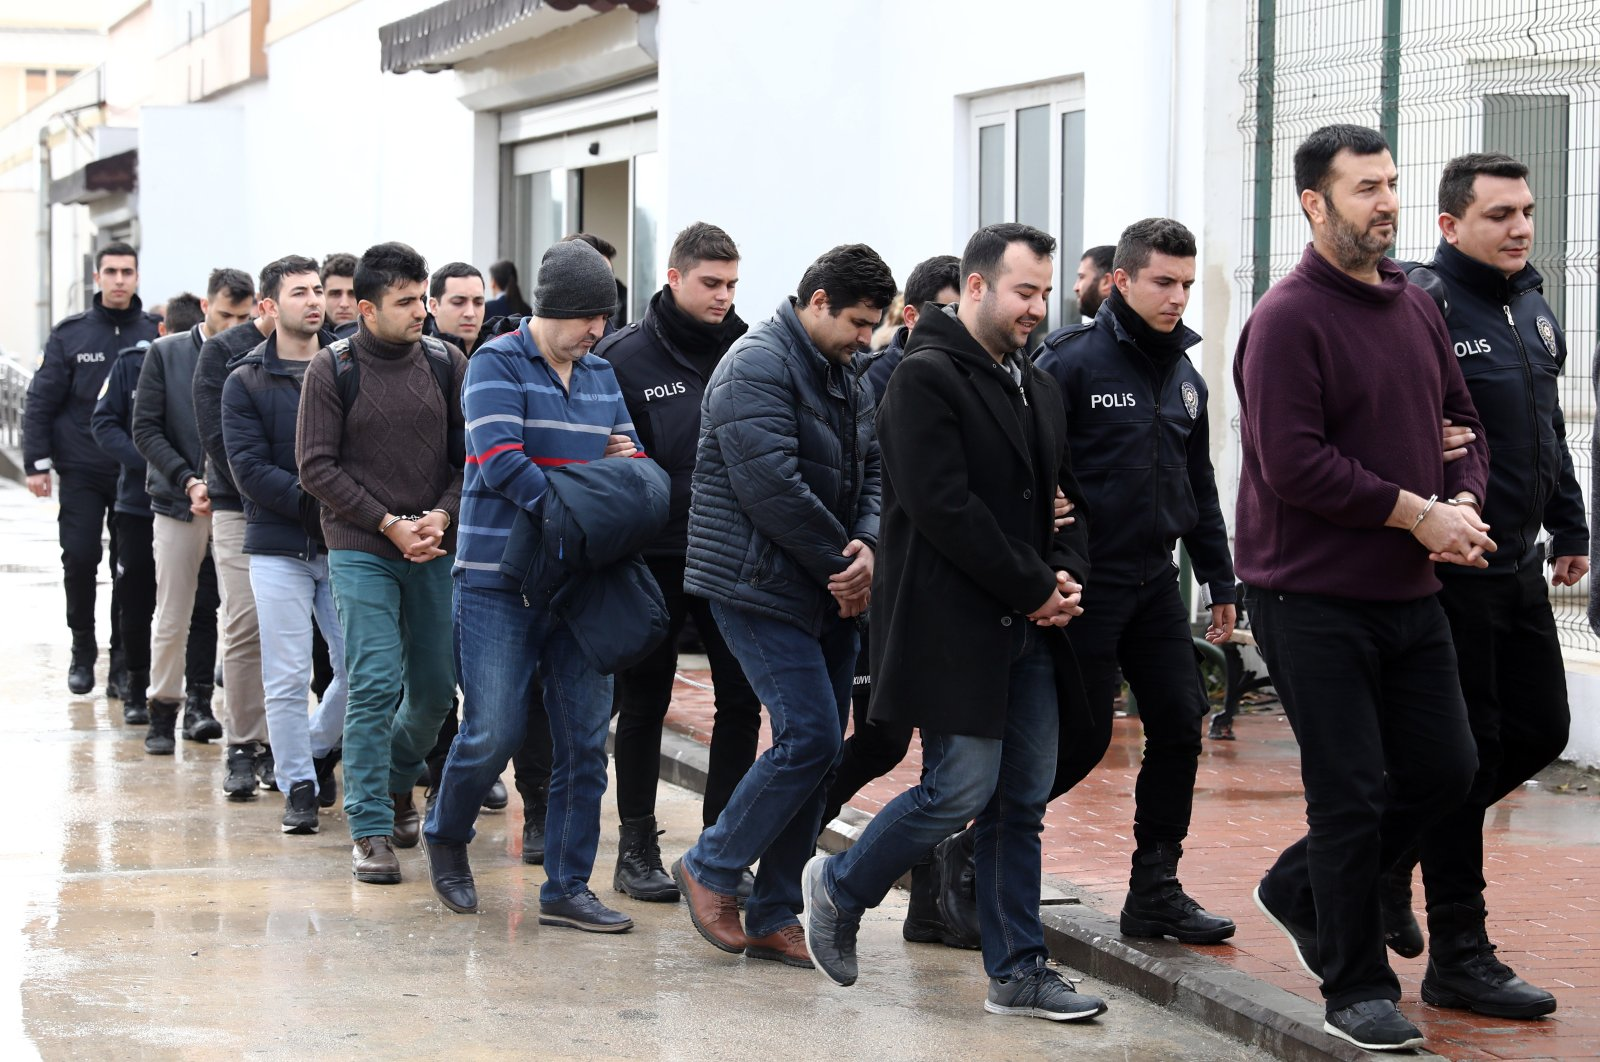 Police escort FETÖ suspects to the courthouse in Adana, Turkey, in this undated photo. (PHOTO BY ZİYA RAMOĞLU)